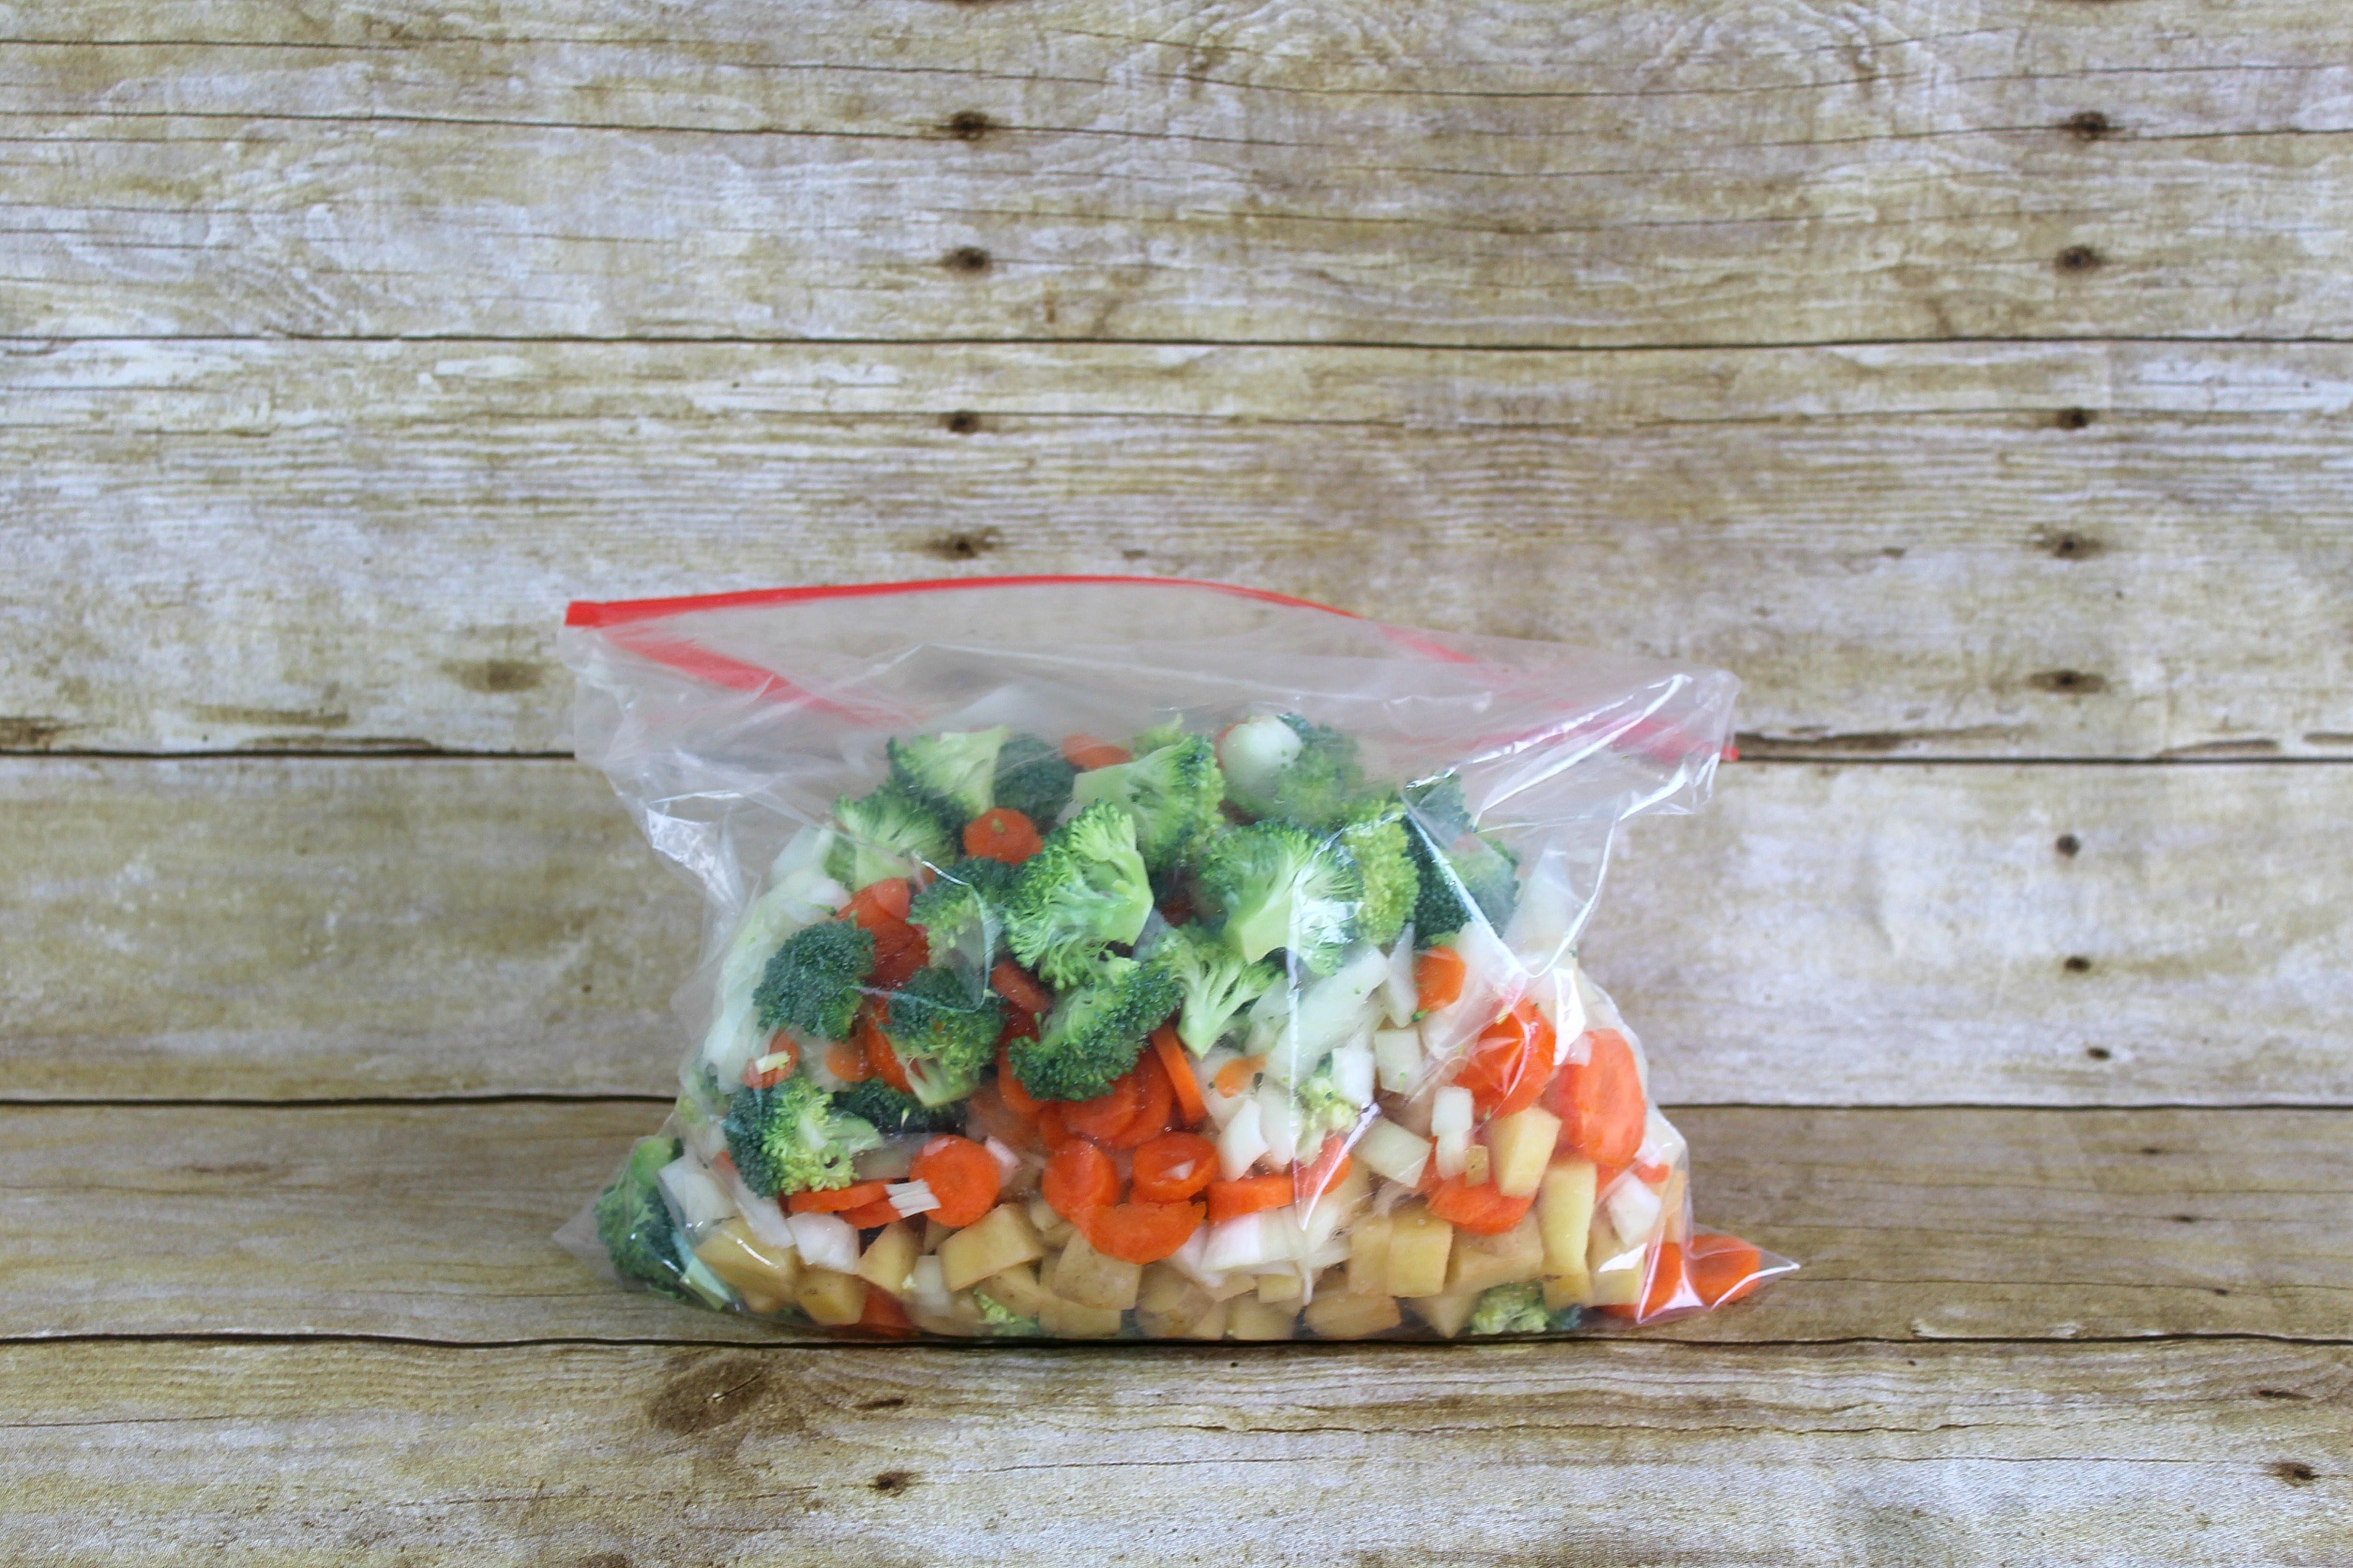 Step 2 of the Roasted Vegetable Pot Pie Pockets Recipe is to place the veggies in a gallon size bag.